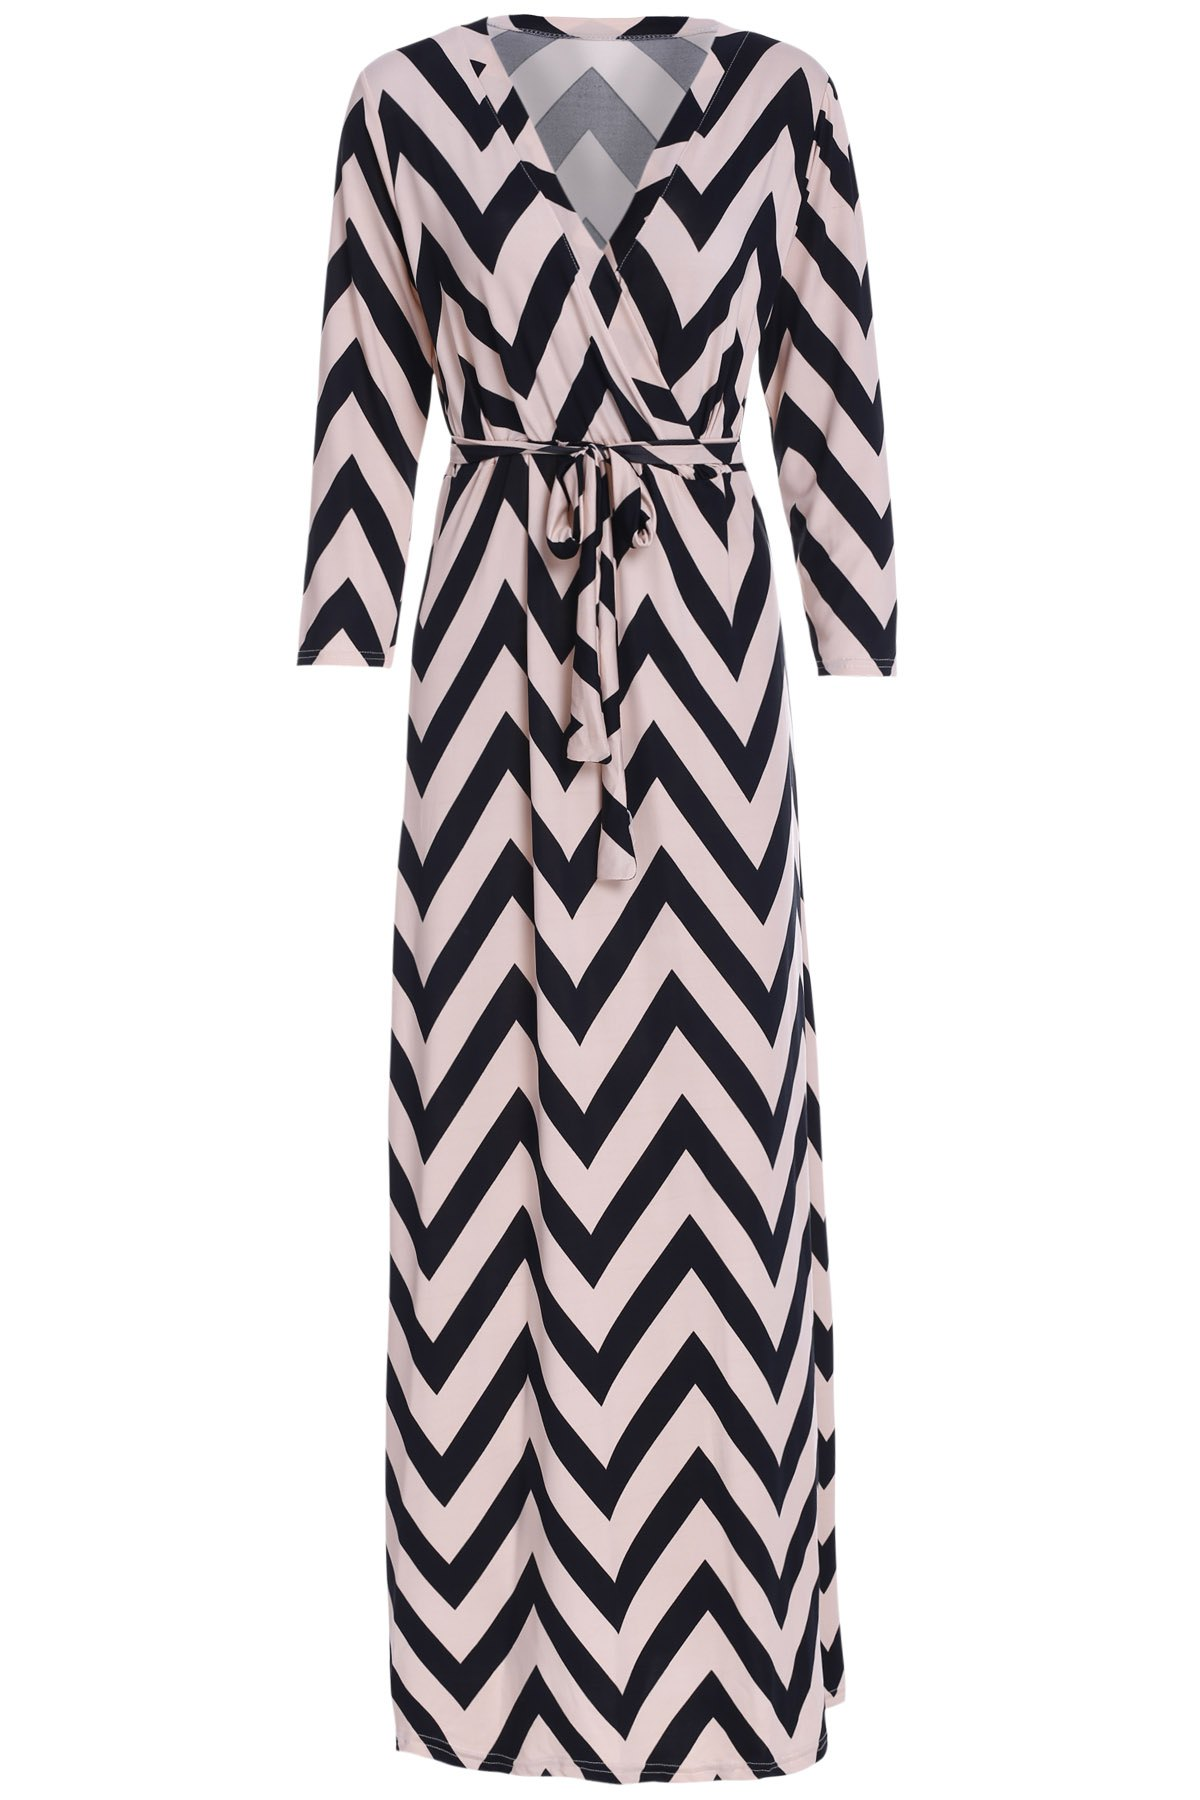 Sexy 3/4 Sleeve Plunging Neck Wave Printed Women's Maxi Dress